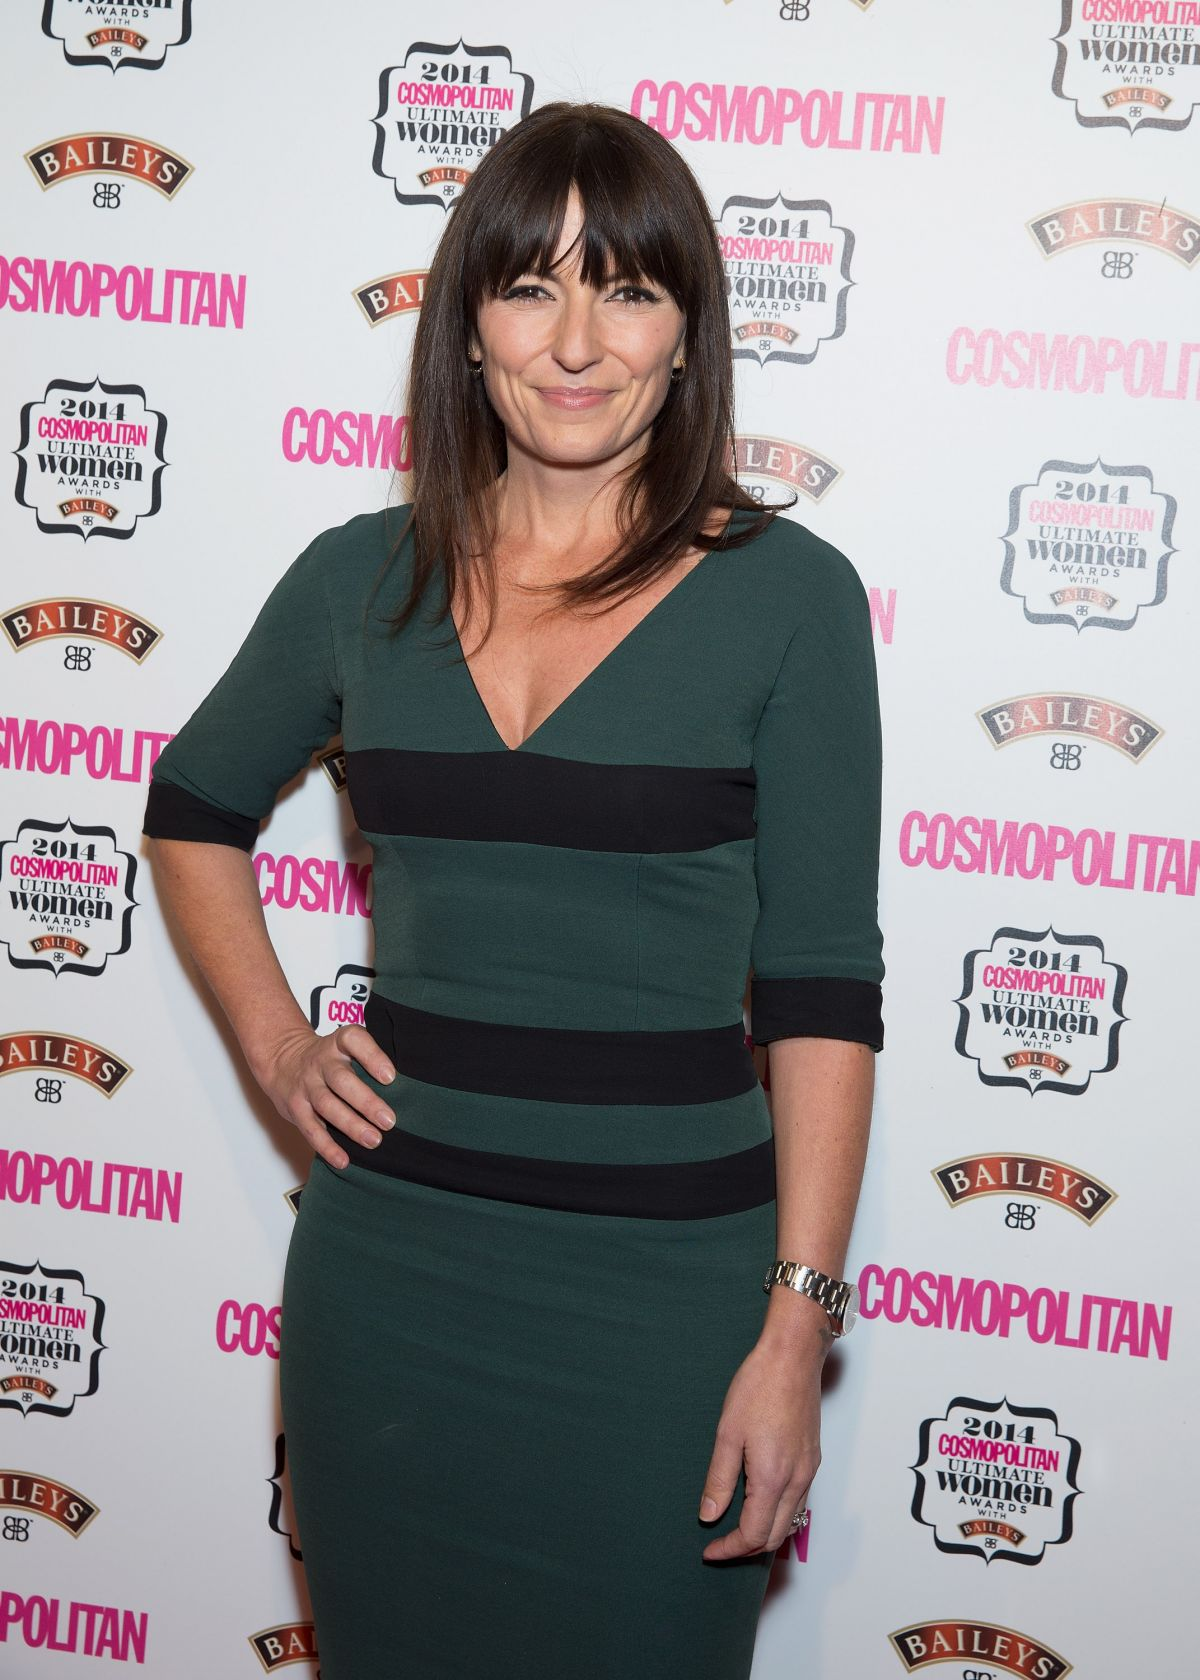 DAVINA MCCALL at Cosmopolitan Ultimate Women Awards 2014 in London